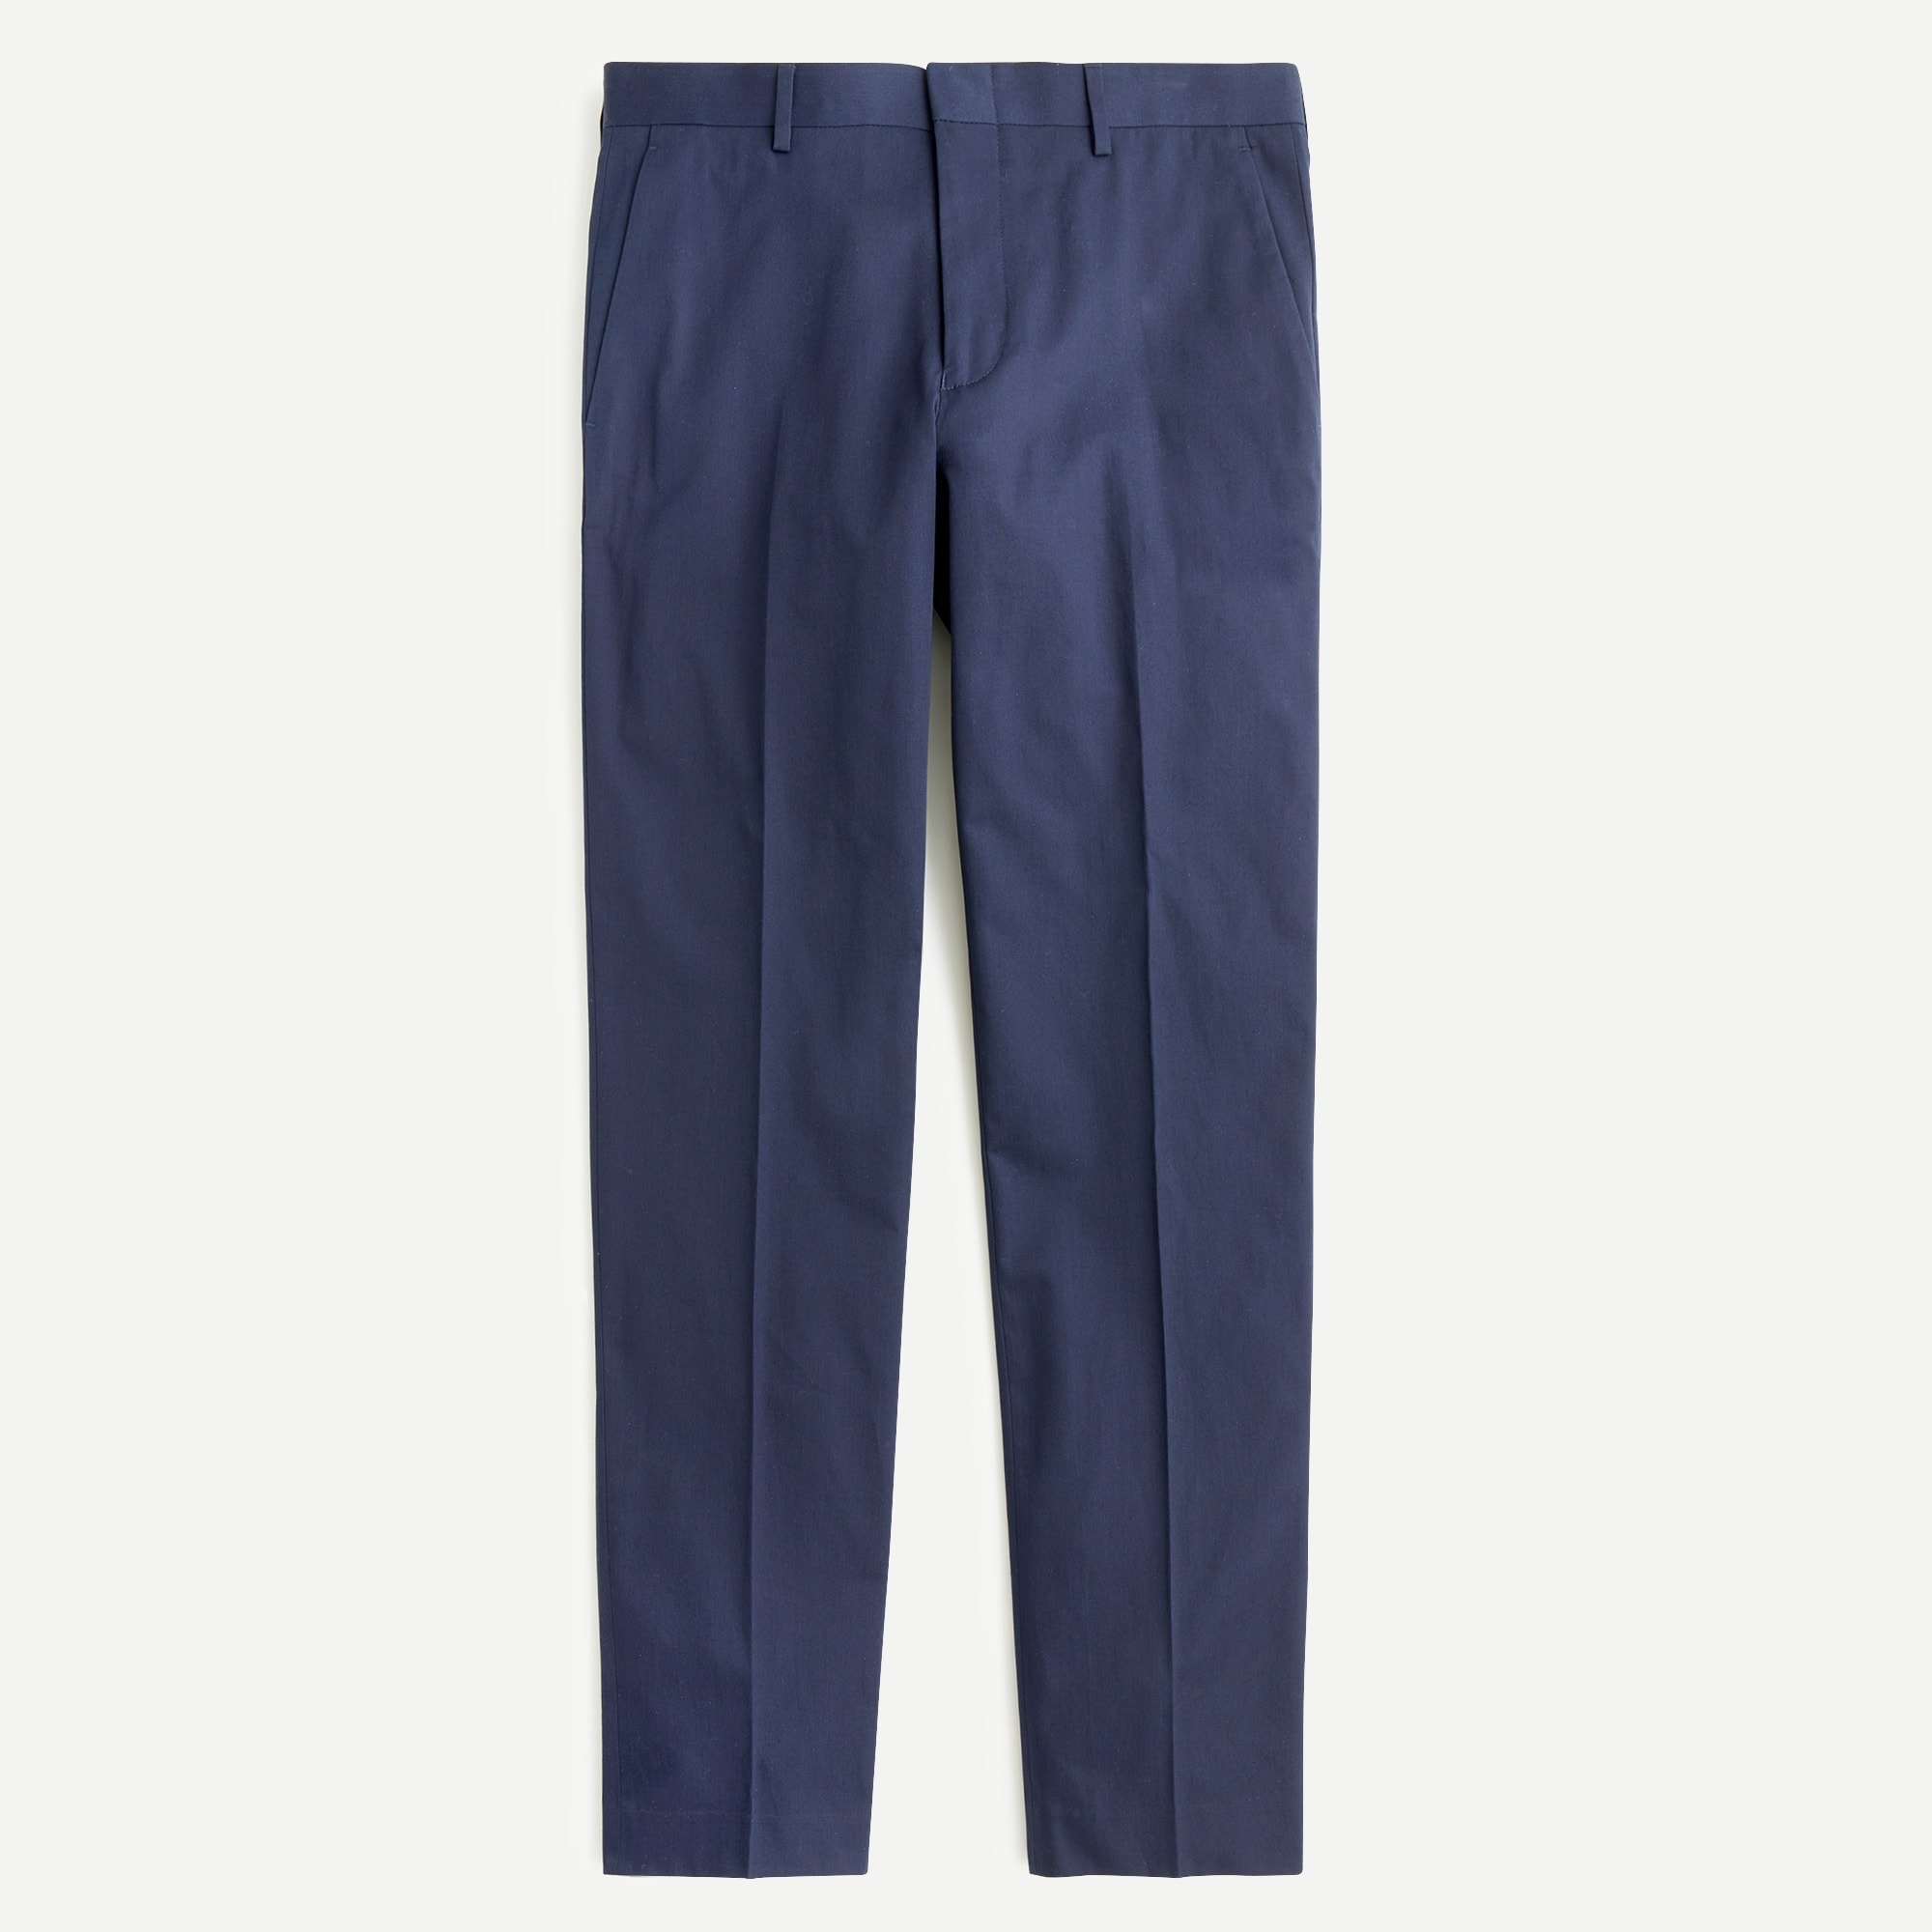 mens Ludlow suit pant in Italian chino